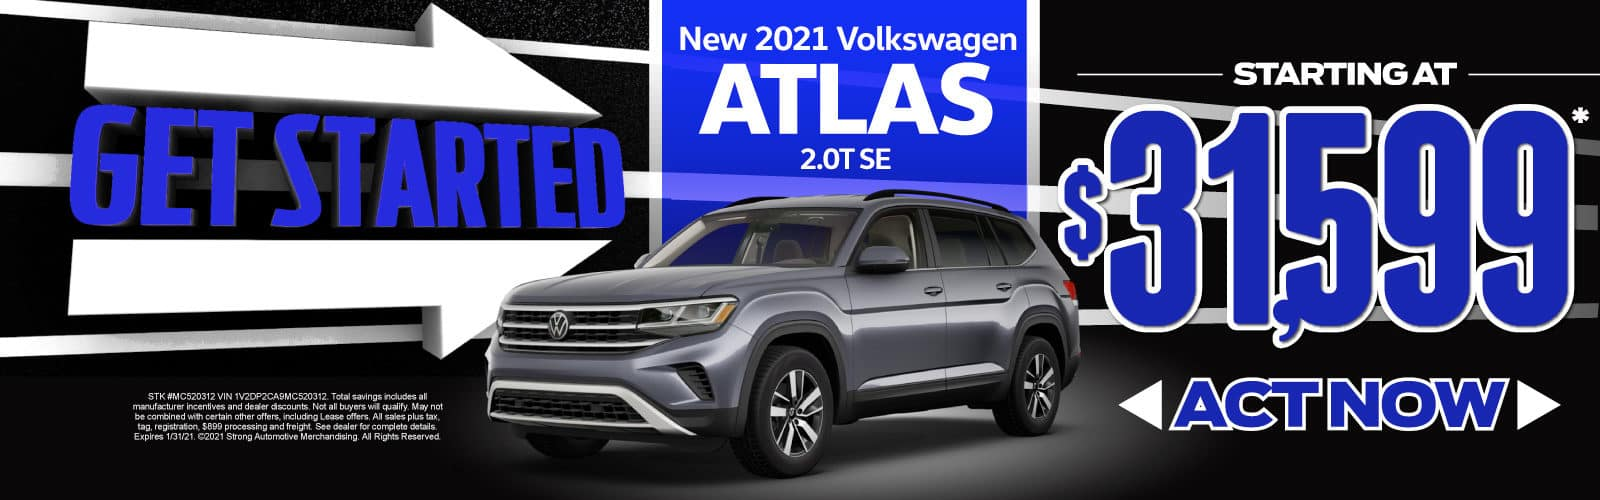 New 2021 VW Atlas - Starting at $31,599 - Act Now